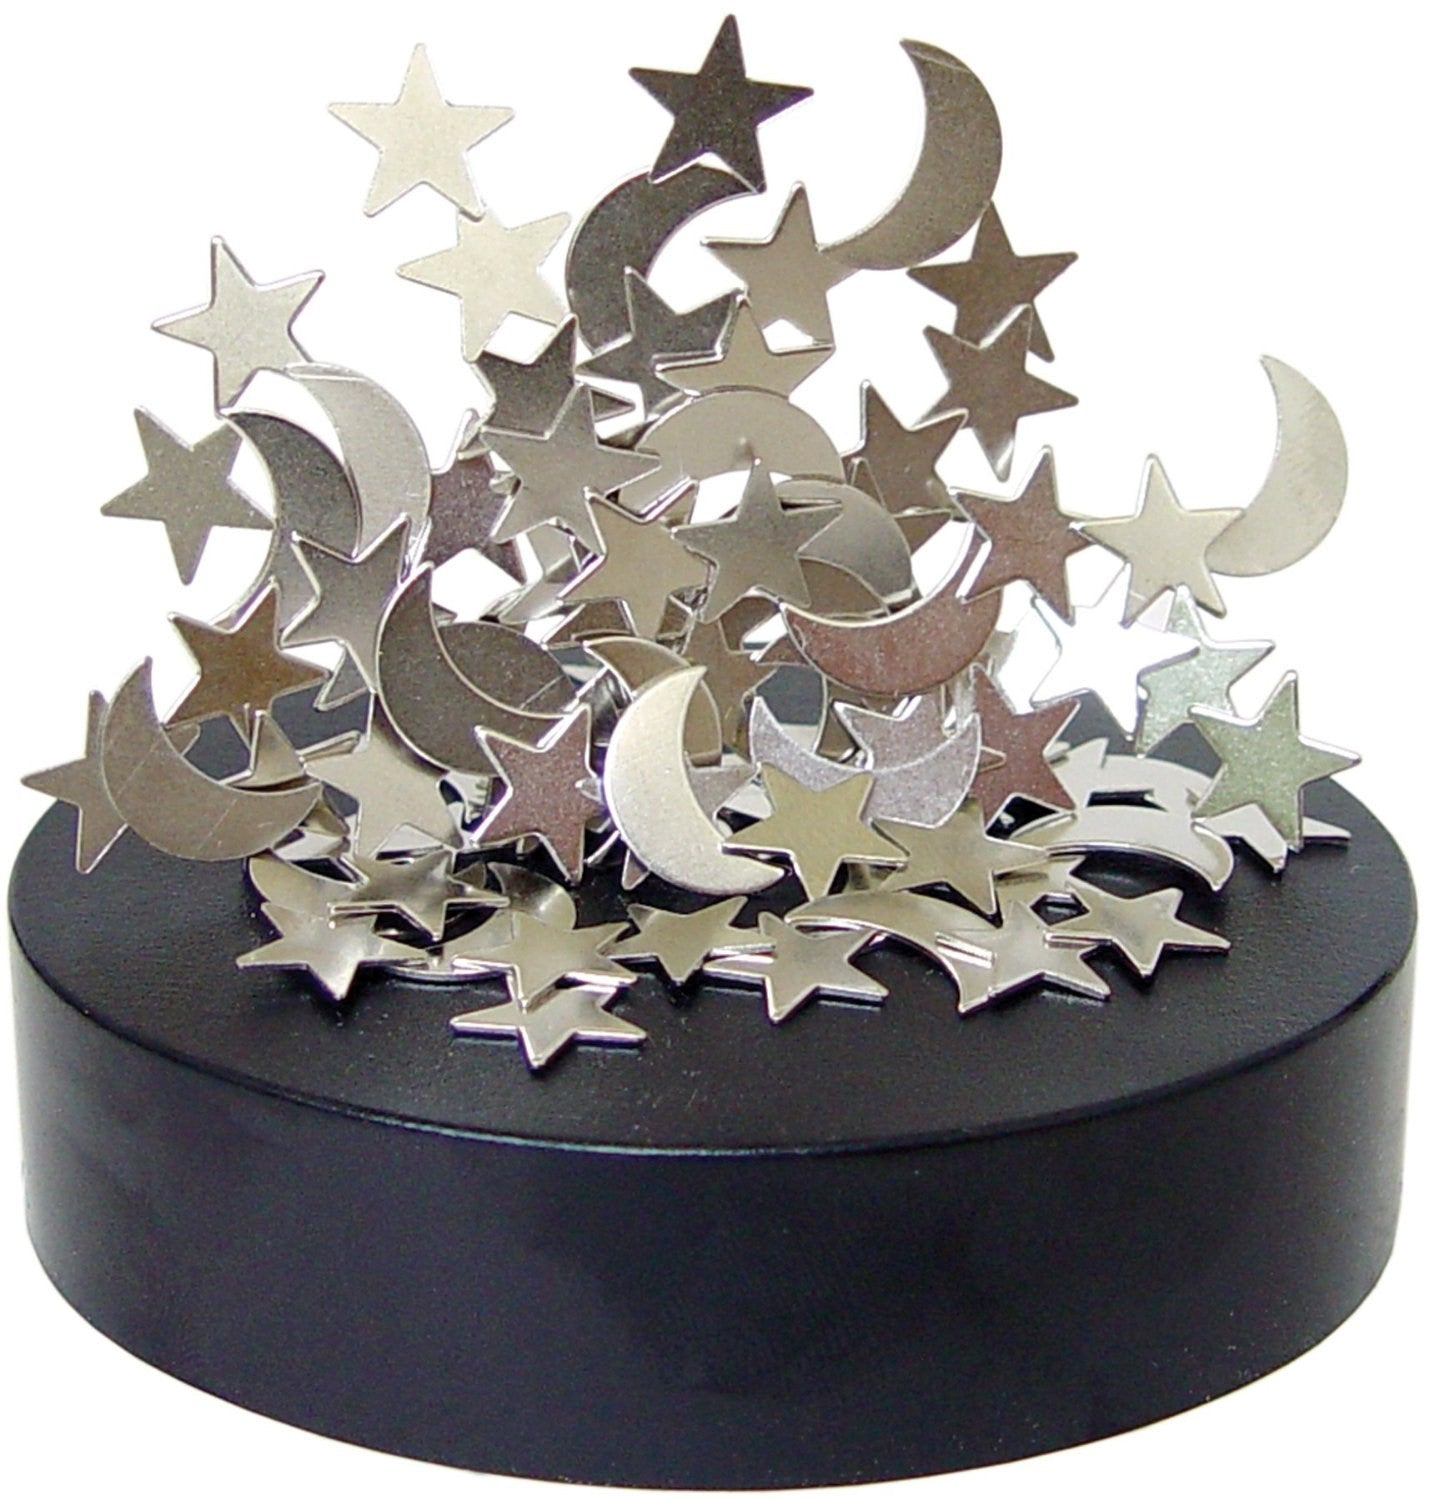 Magnetic Sculptures Celestial Desk Top Toy - Off The Wall Toys and Gifts